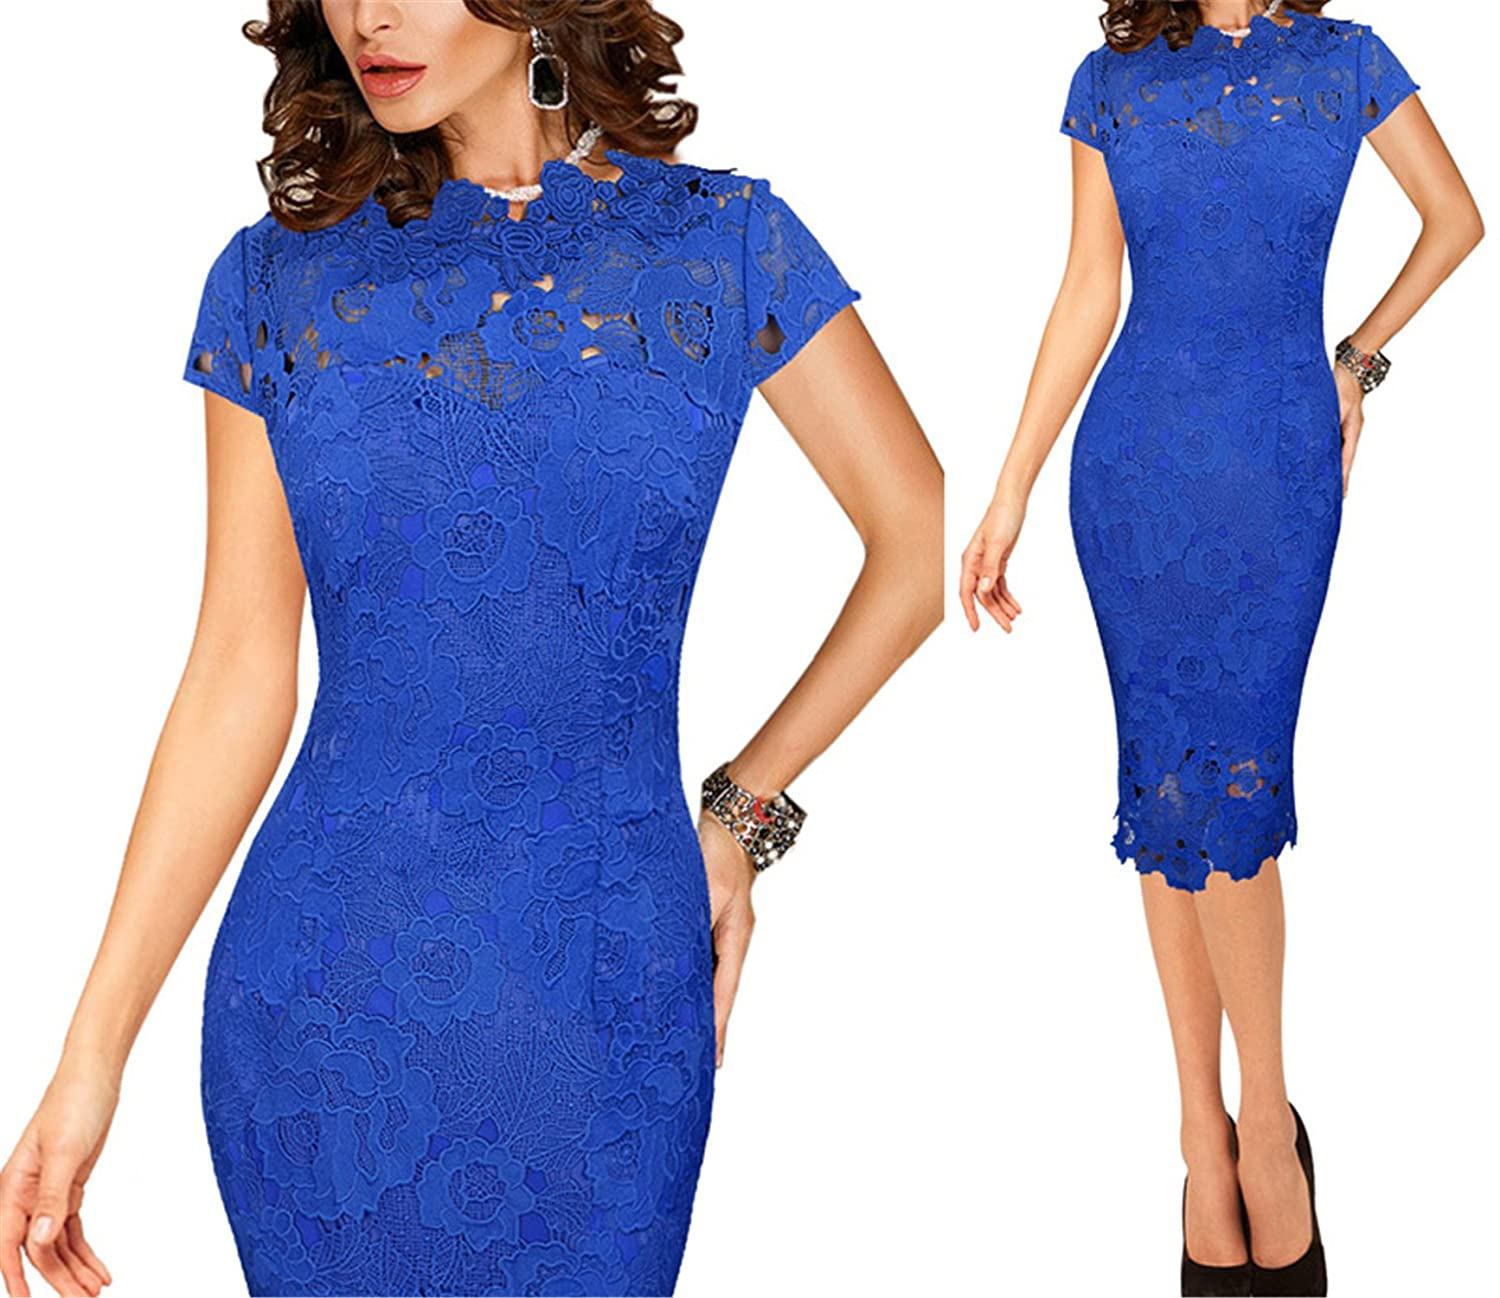 bluee 2 Ivan Johns Dresses Elegant Sexy Crochet Hollow Out Pinup Party Evening Special Occasion Sheath Fitted Vestidos Dress 4272